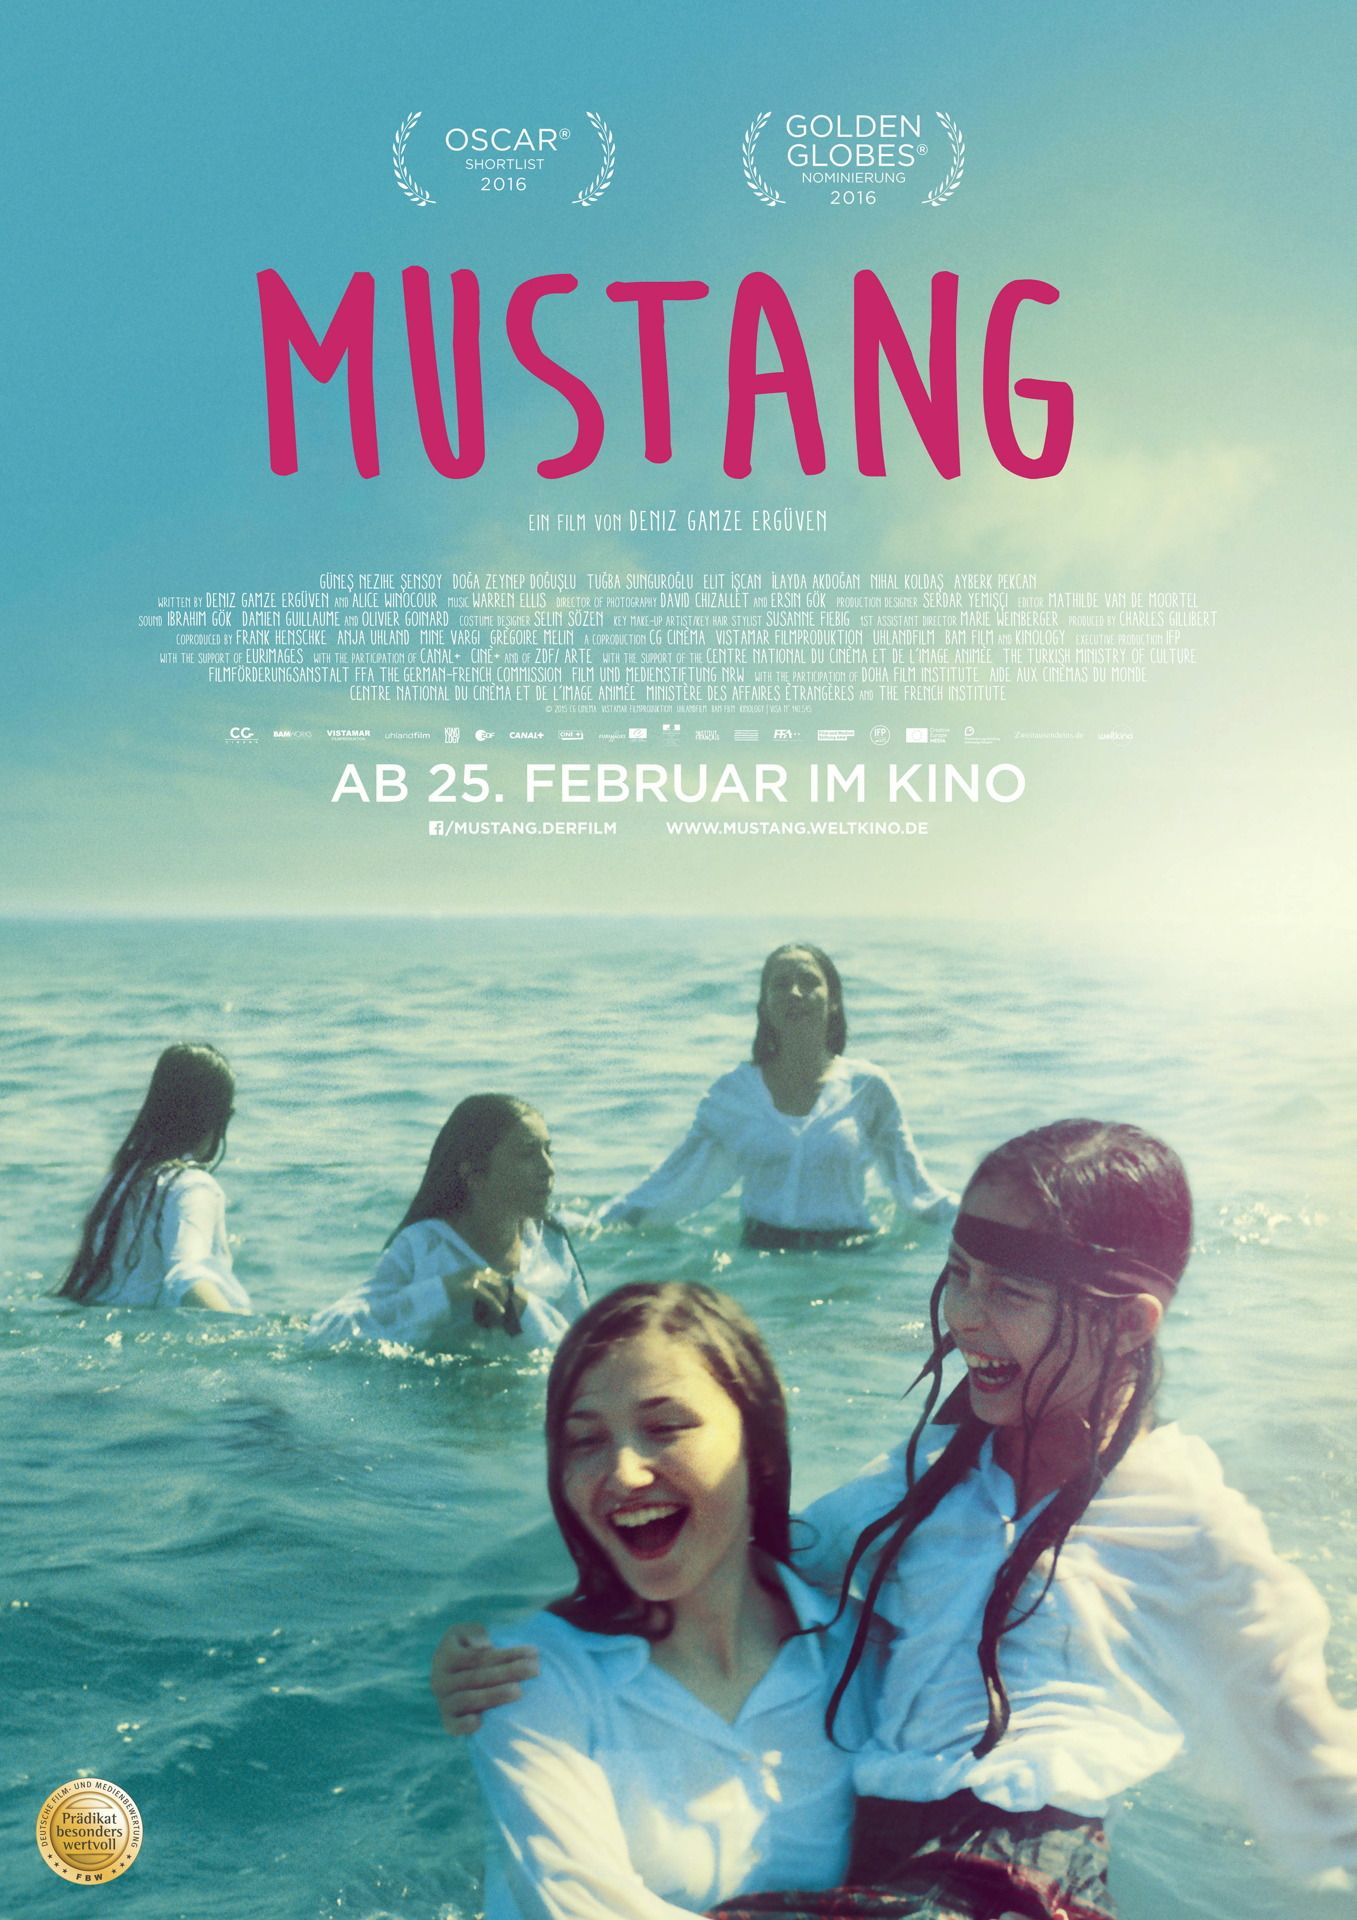 mustang cinema pinterest film movies and mustang film. Black Bedroom Furniture Sets. Home Design Ideas